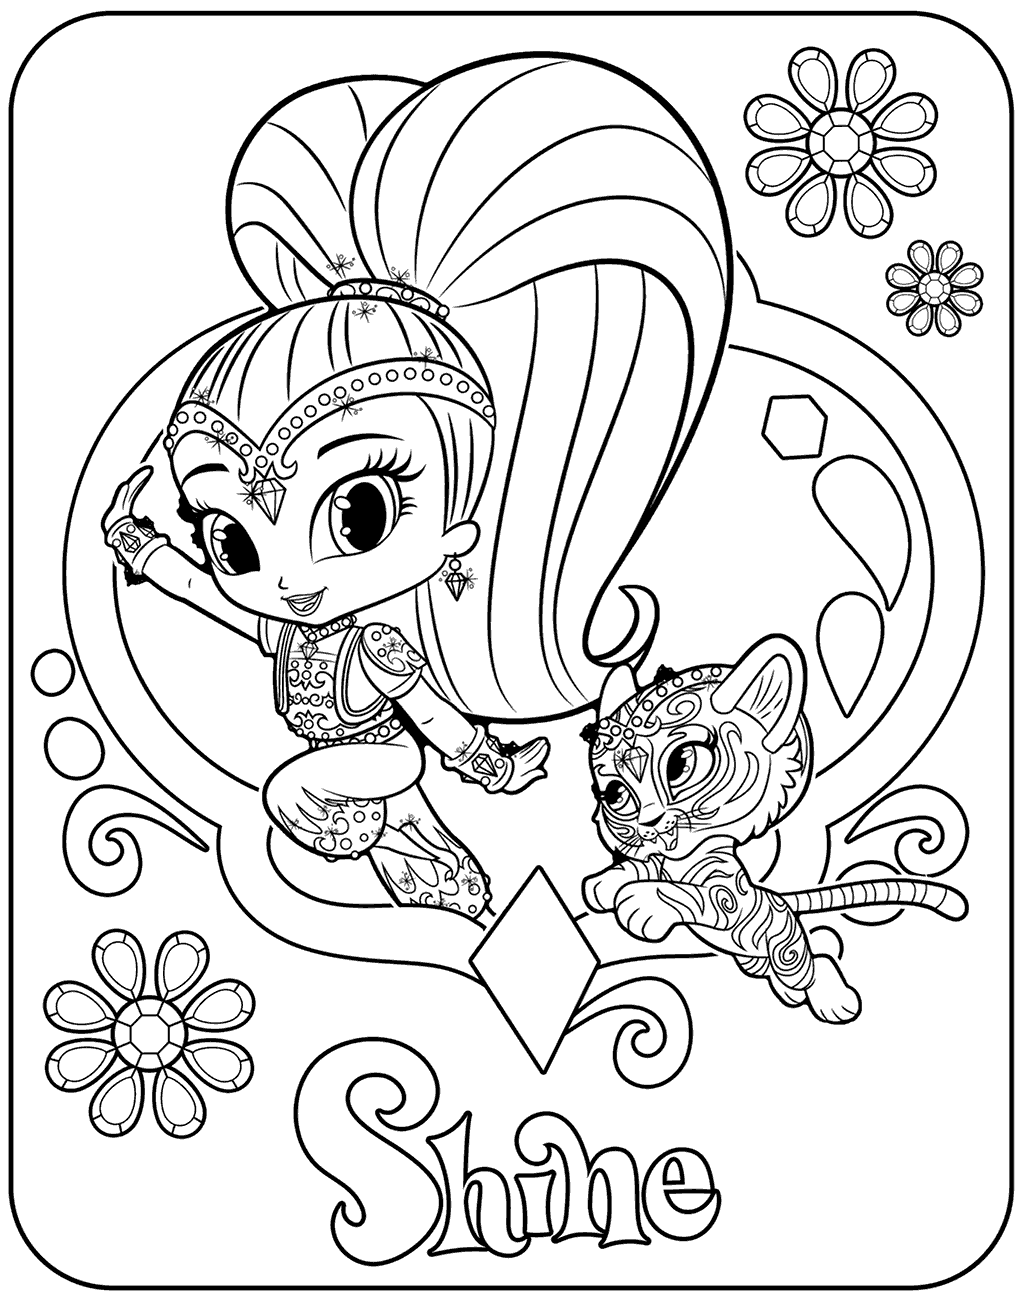 Shine With Nahal Coloring Page